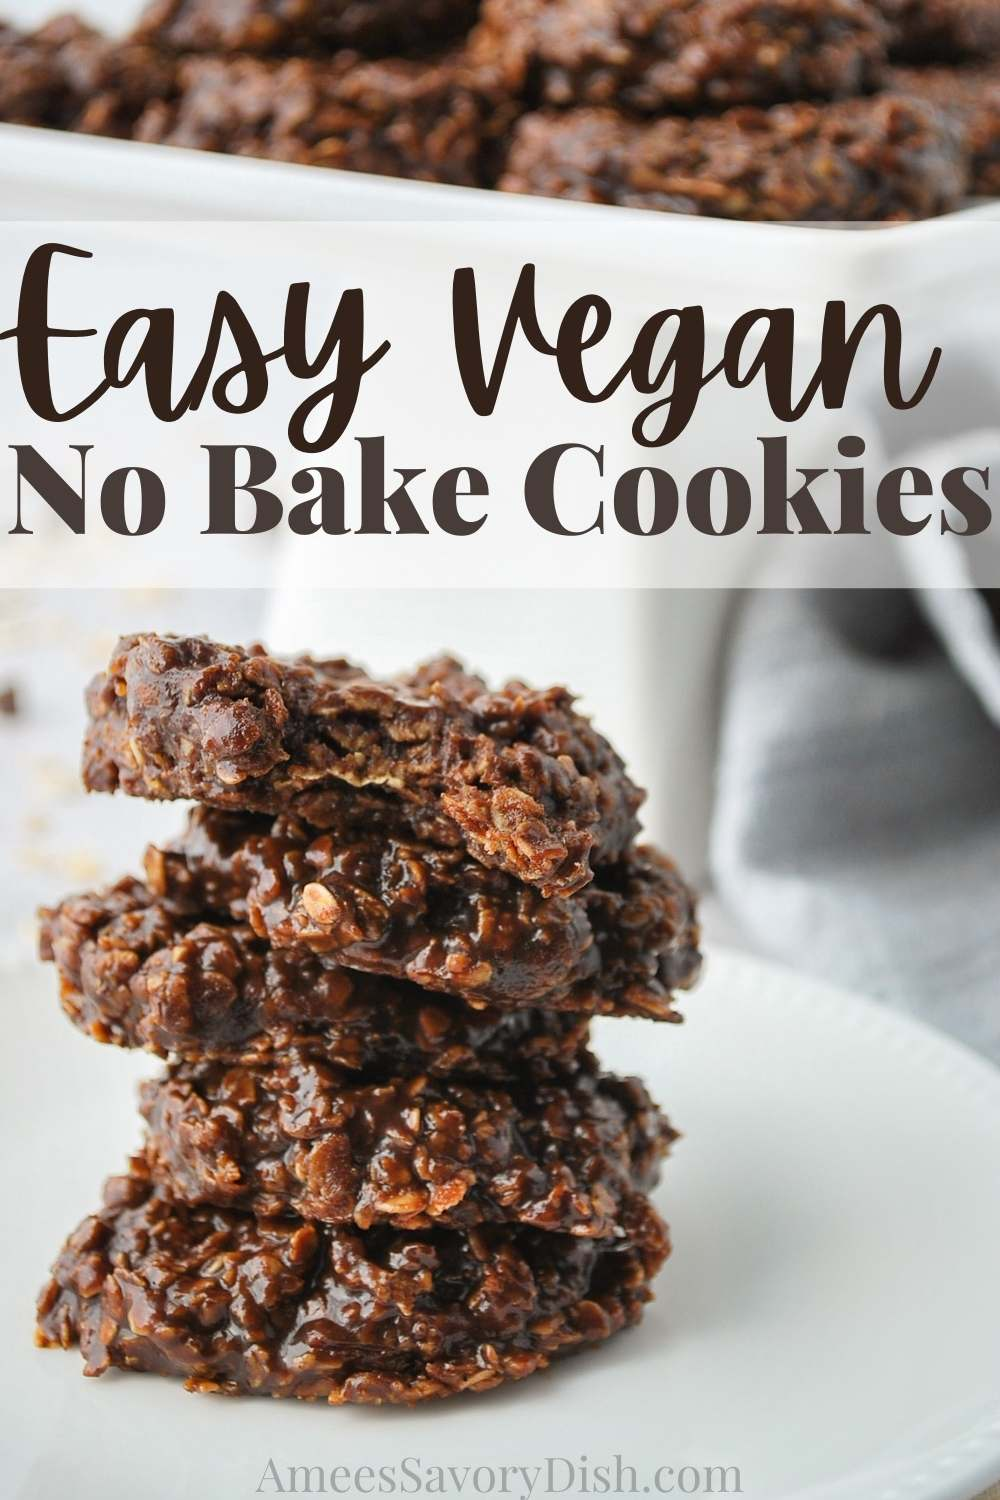 This Vegan No-Bake Cookies recipe makes soft and chewy chocolate-peanut butter oatmeal cookies with healthy ingredients in just 10 minutes -no baking needed! via @Ameessavorydish